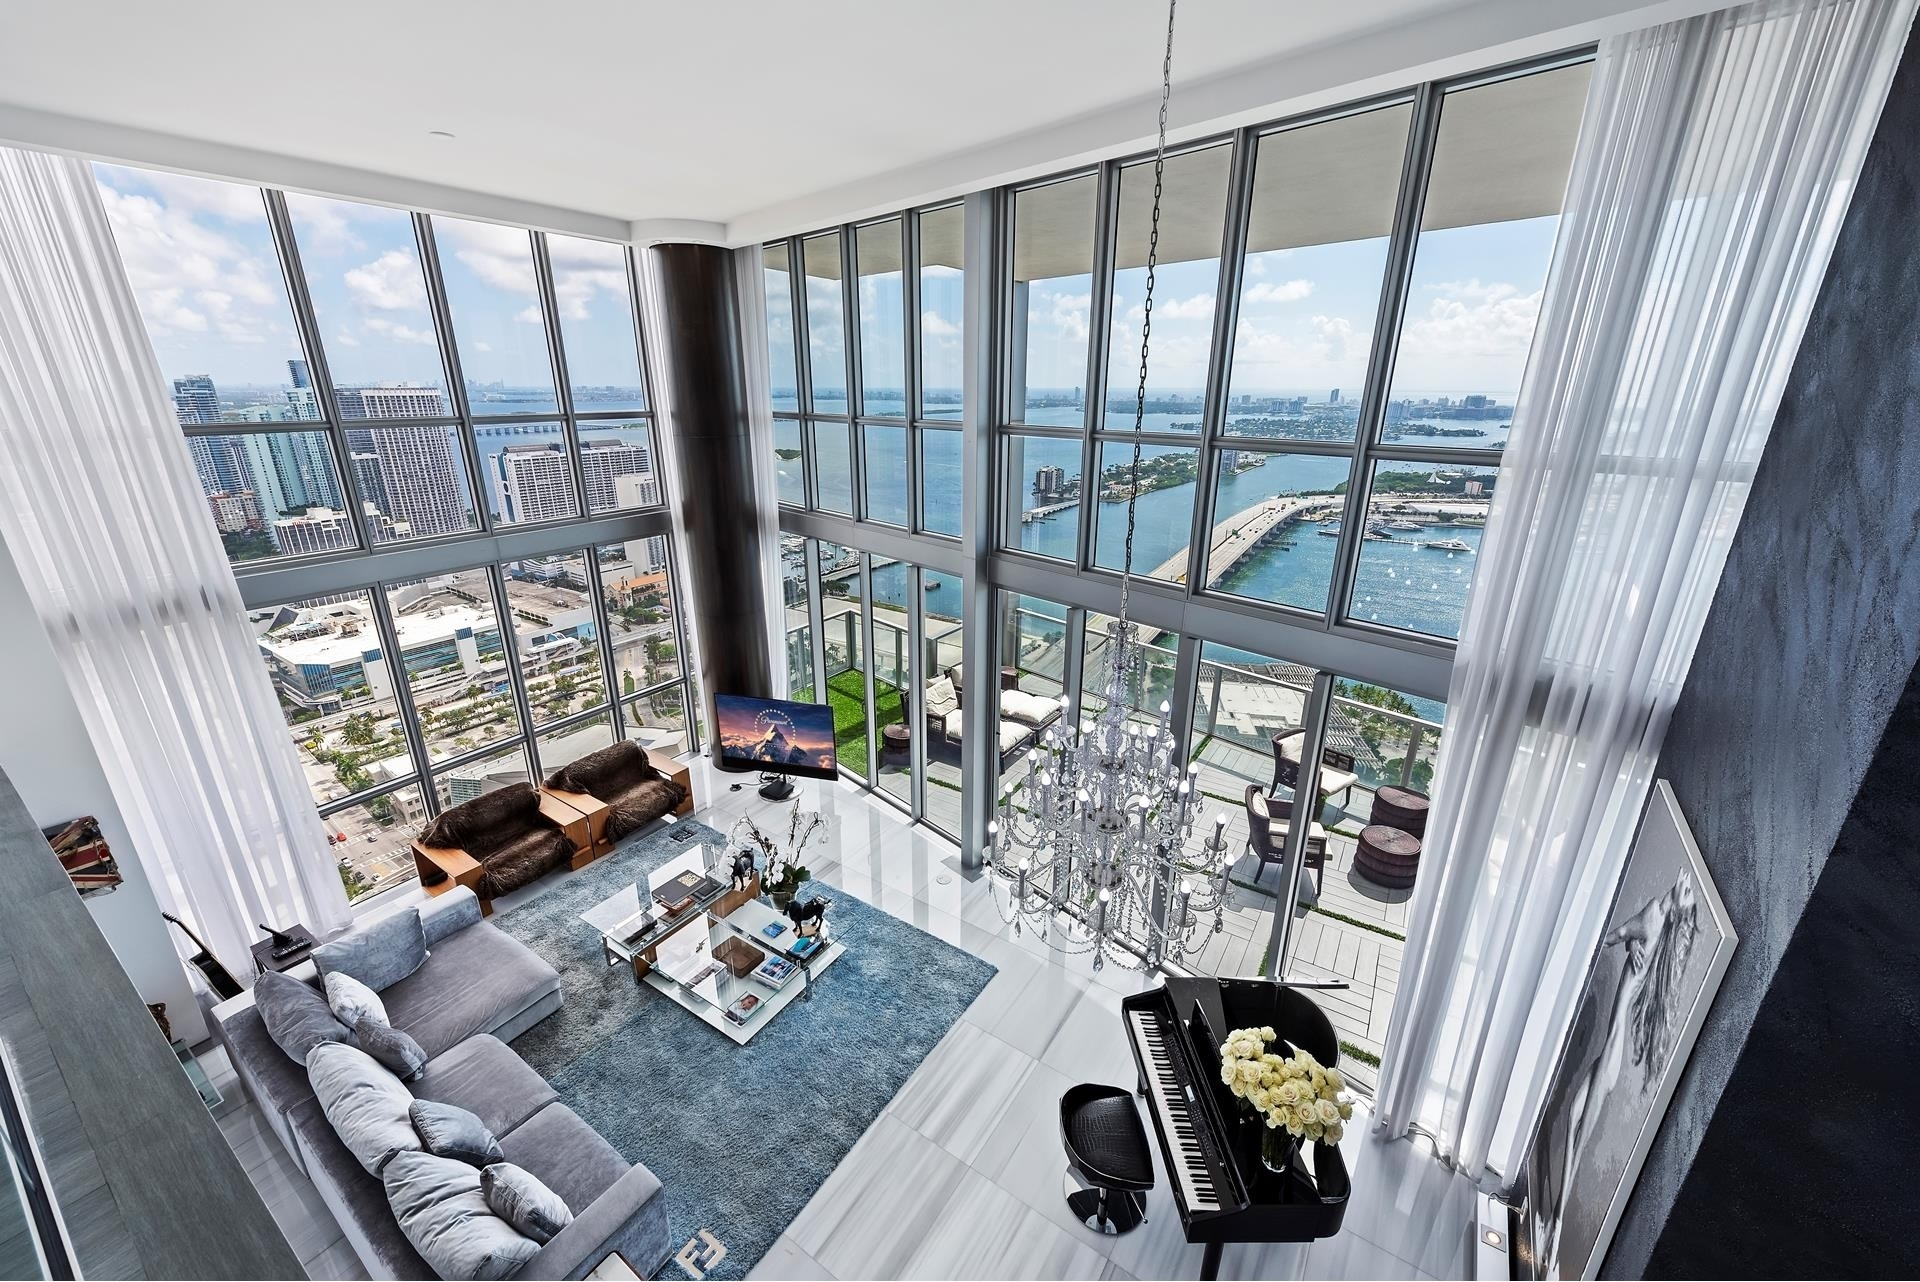 Condominium for Sale at 1100 Biscayne Blvd , 5306 Park West, Miami, FL 33132